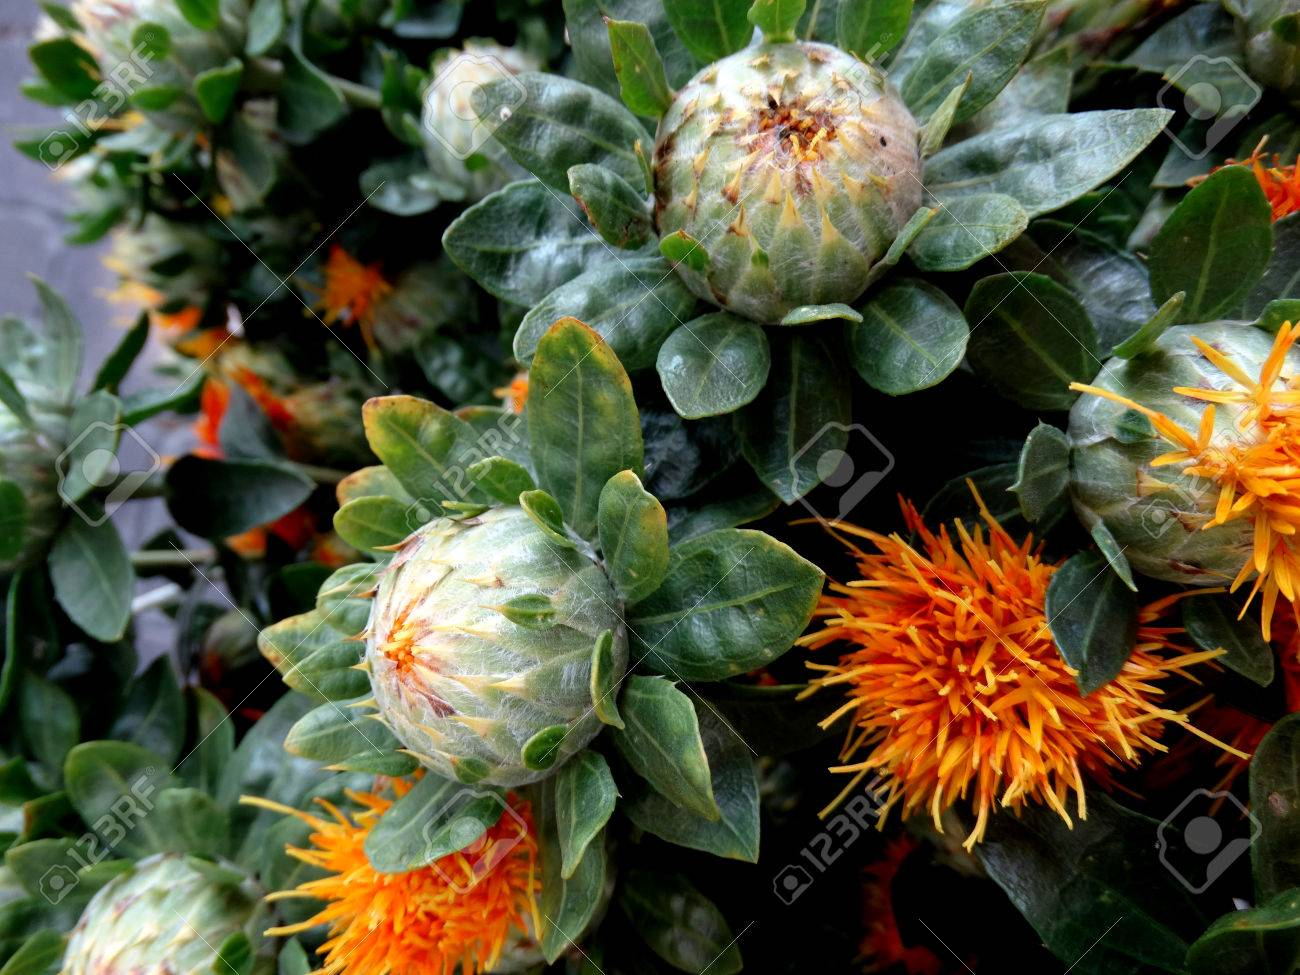 Safflower Carthamus Tinctorius Cultivated Herbaceous Plant Stock Photo Picture And Royalty Free Image Image 34771195